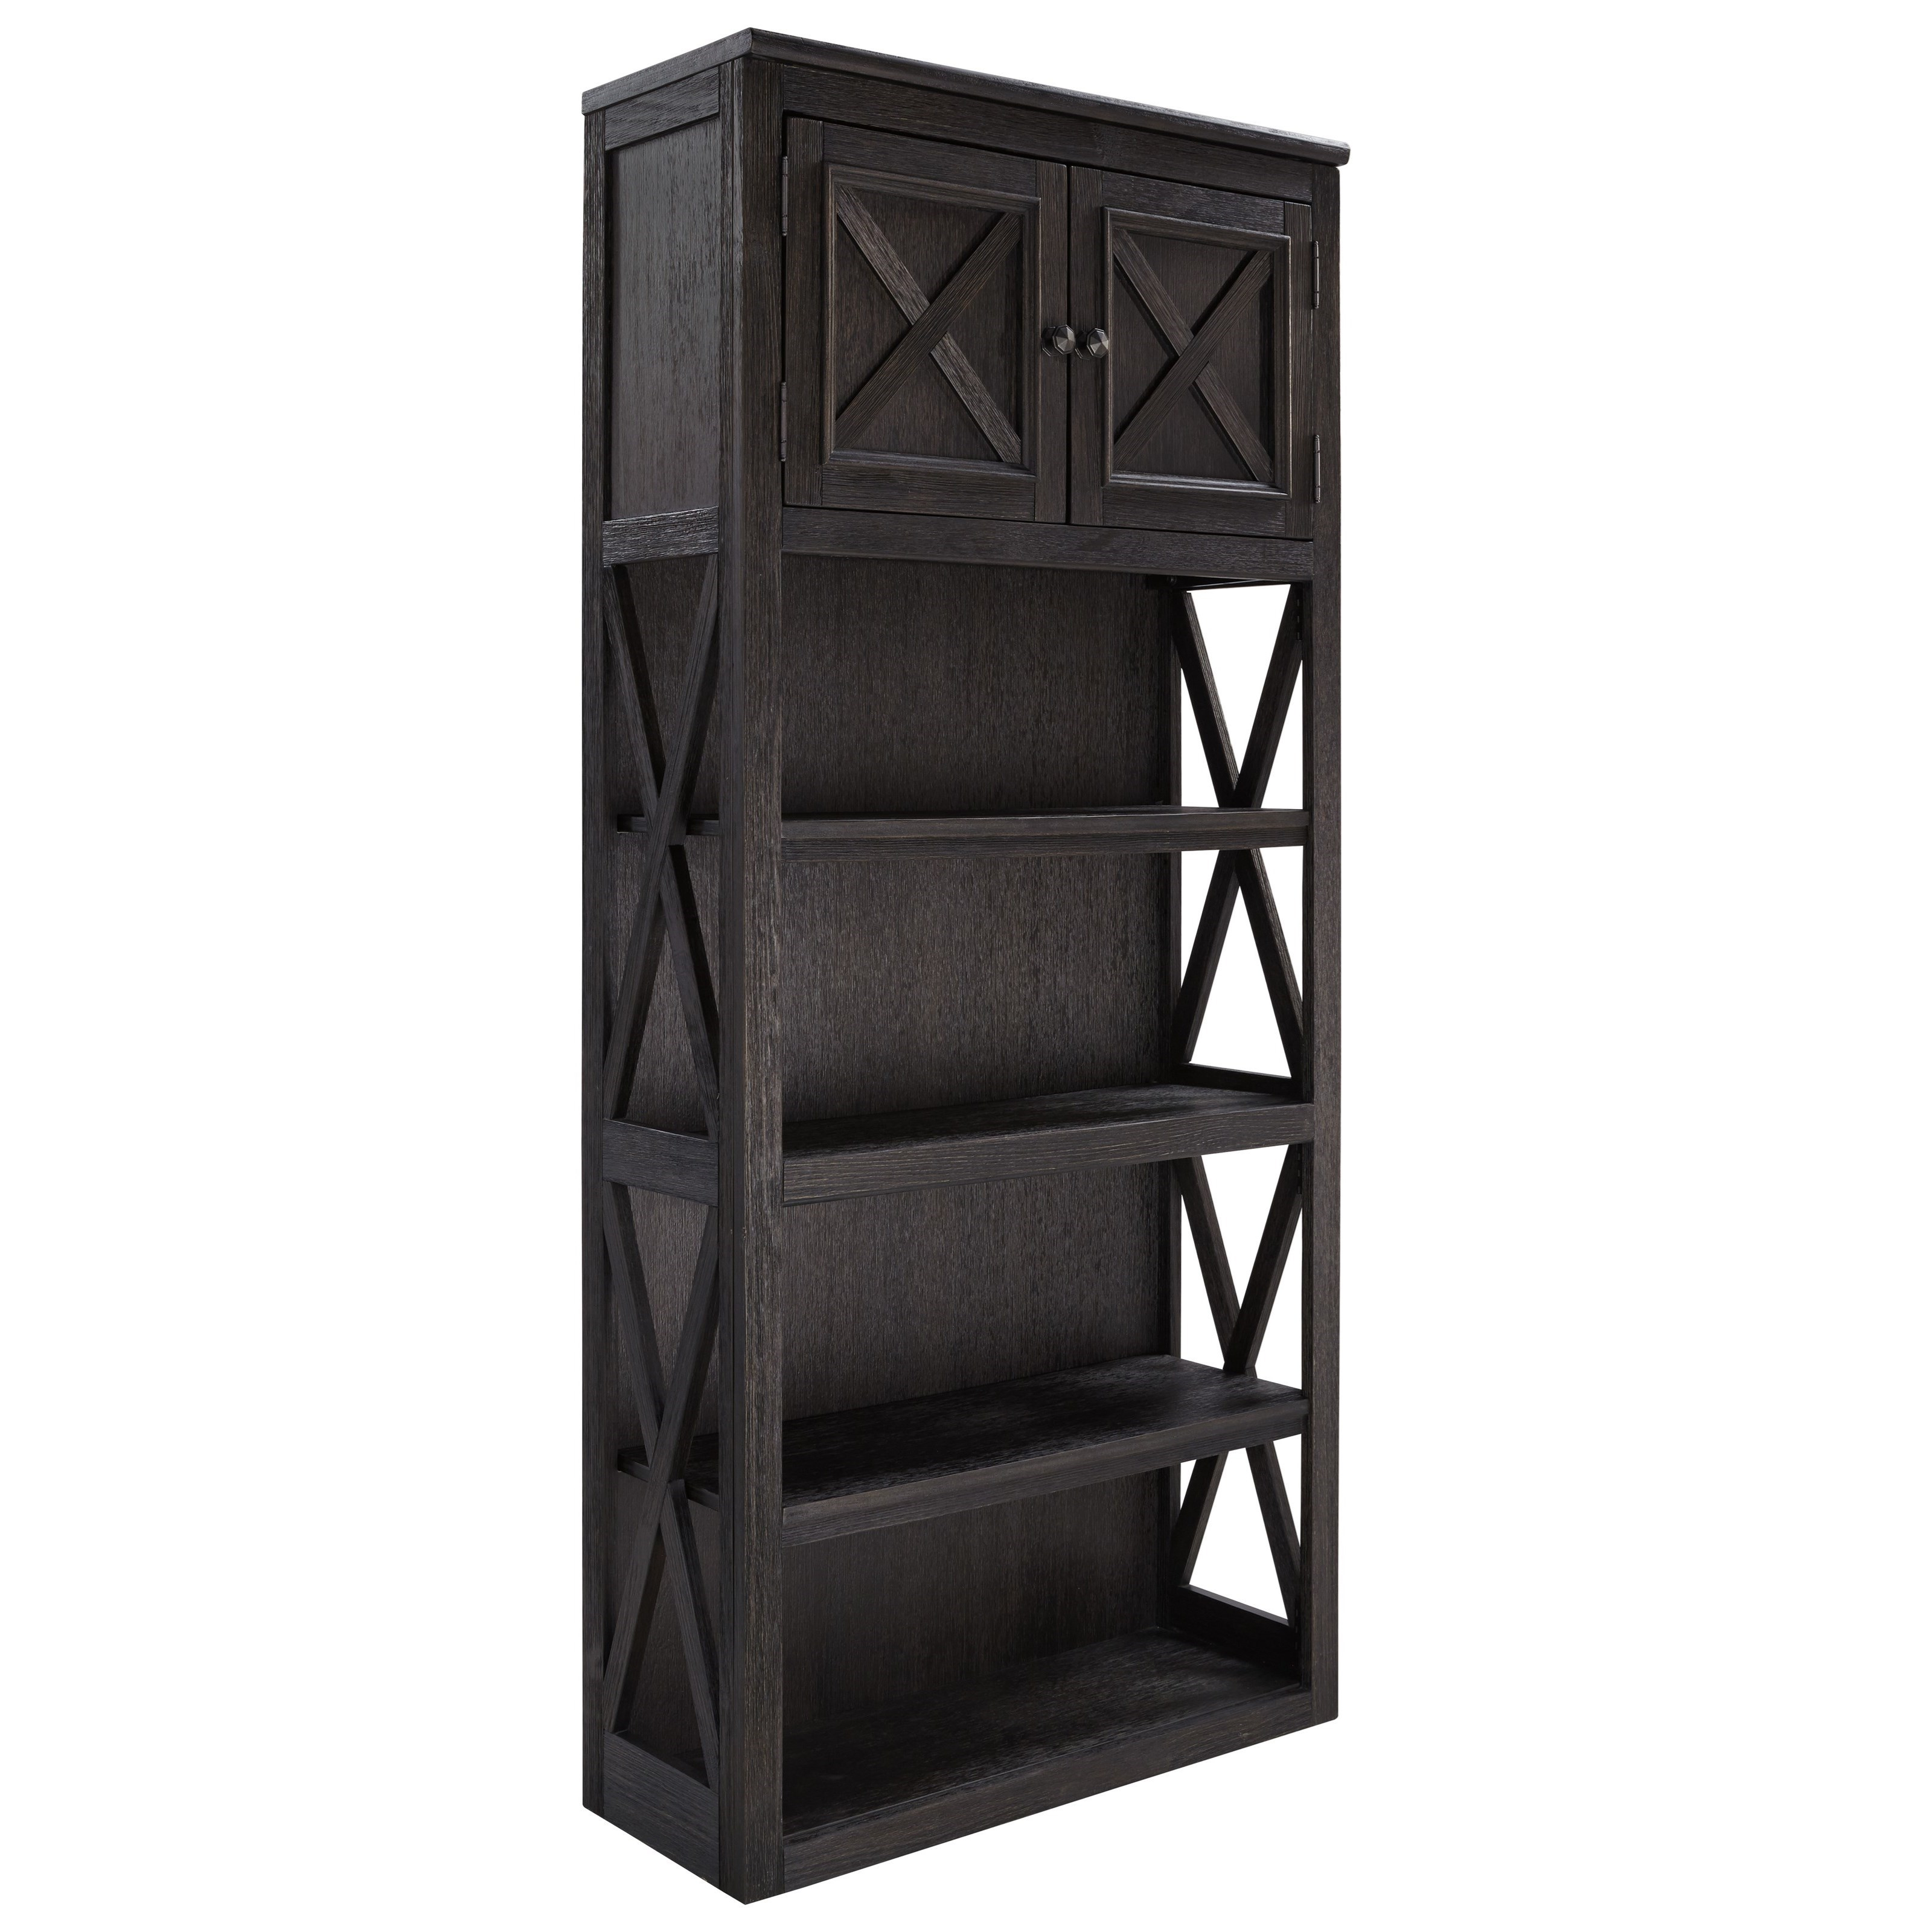 Large Open Bookcase with 2 Doors